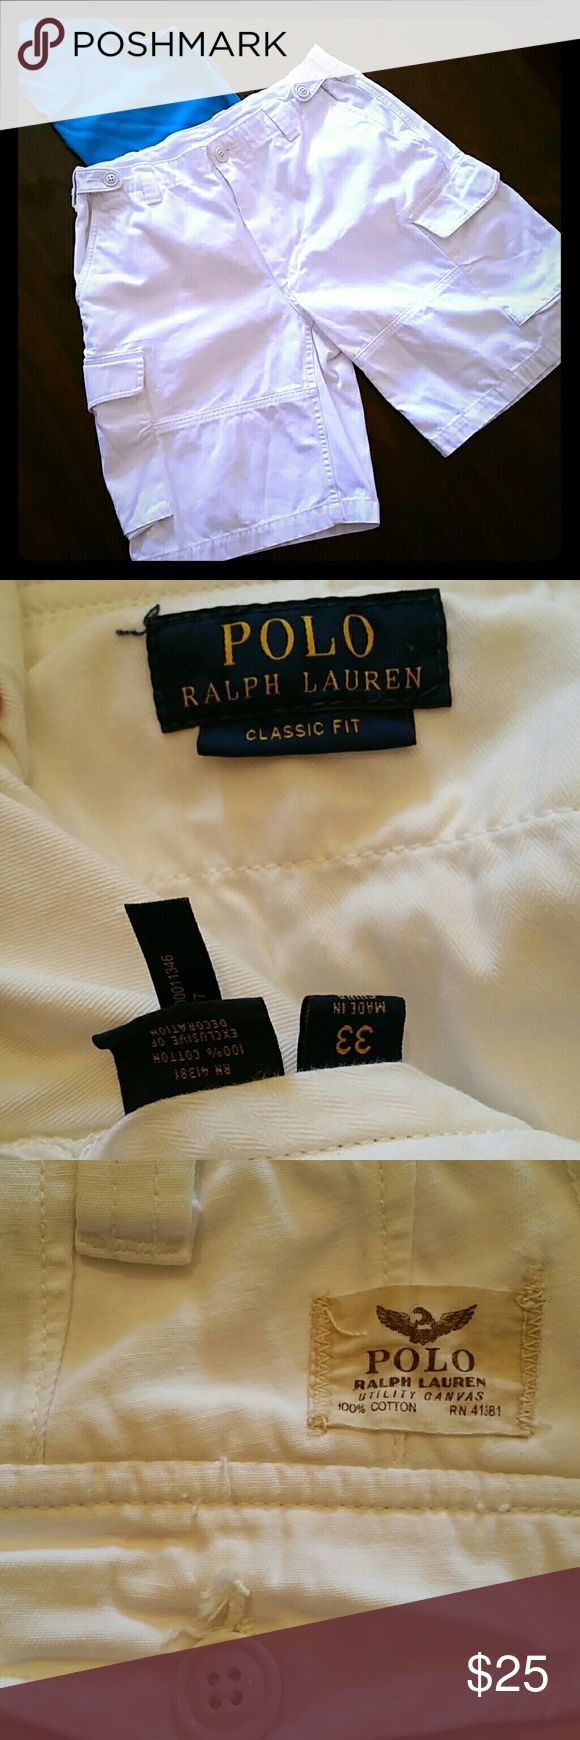 Polo shorts for men Polo shorts, men size 33, 6 pocket cargo shorts Polo by Ralph Lauren Shorts Cargo